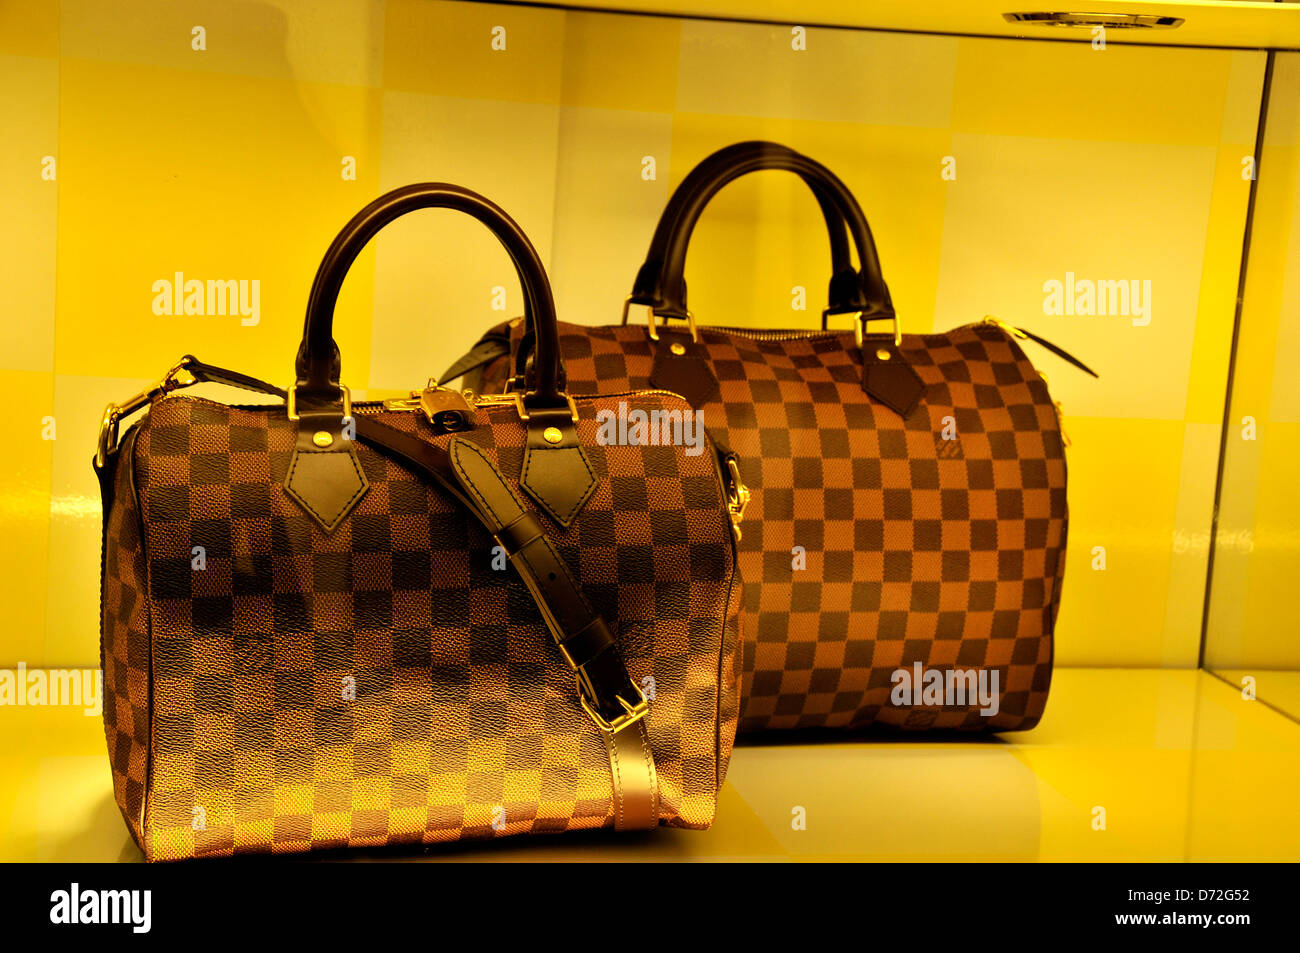 Louis Vuitton Woman Hand Bag In The Window Of Lv Boutique In Dubai